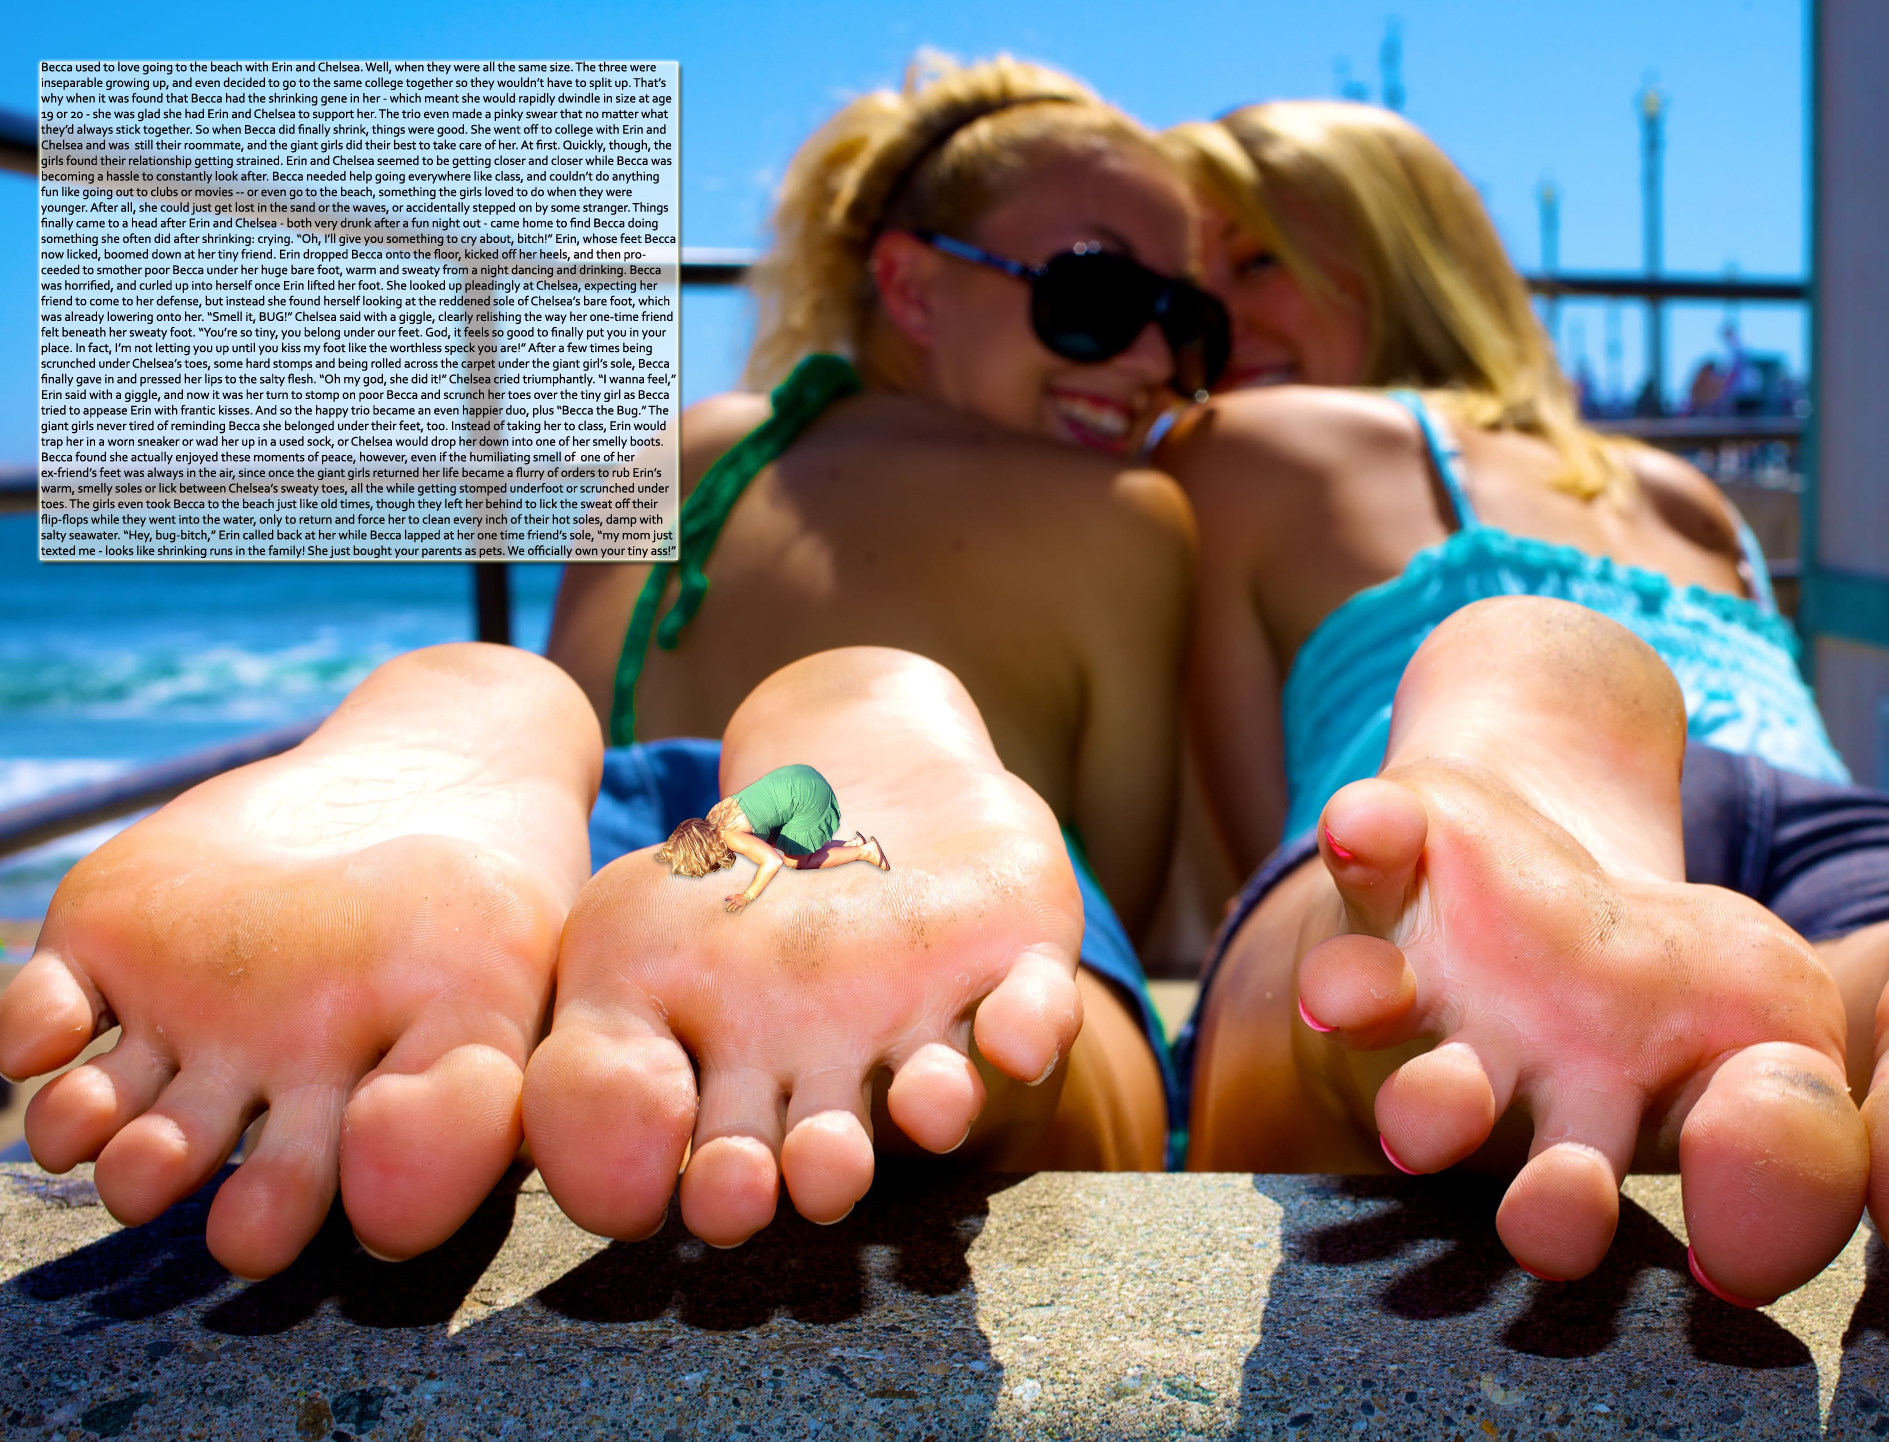 foot slave to shemale giantess stories